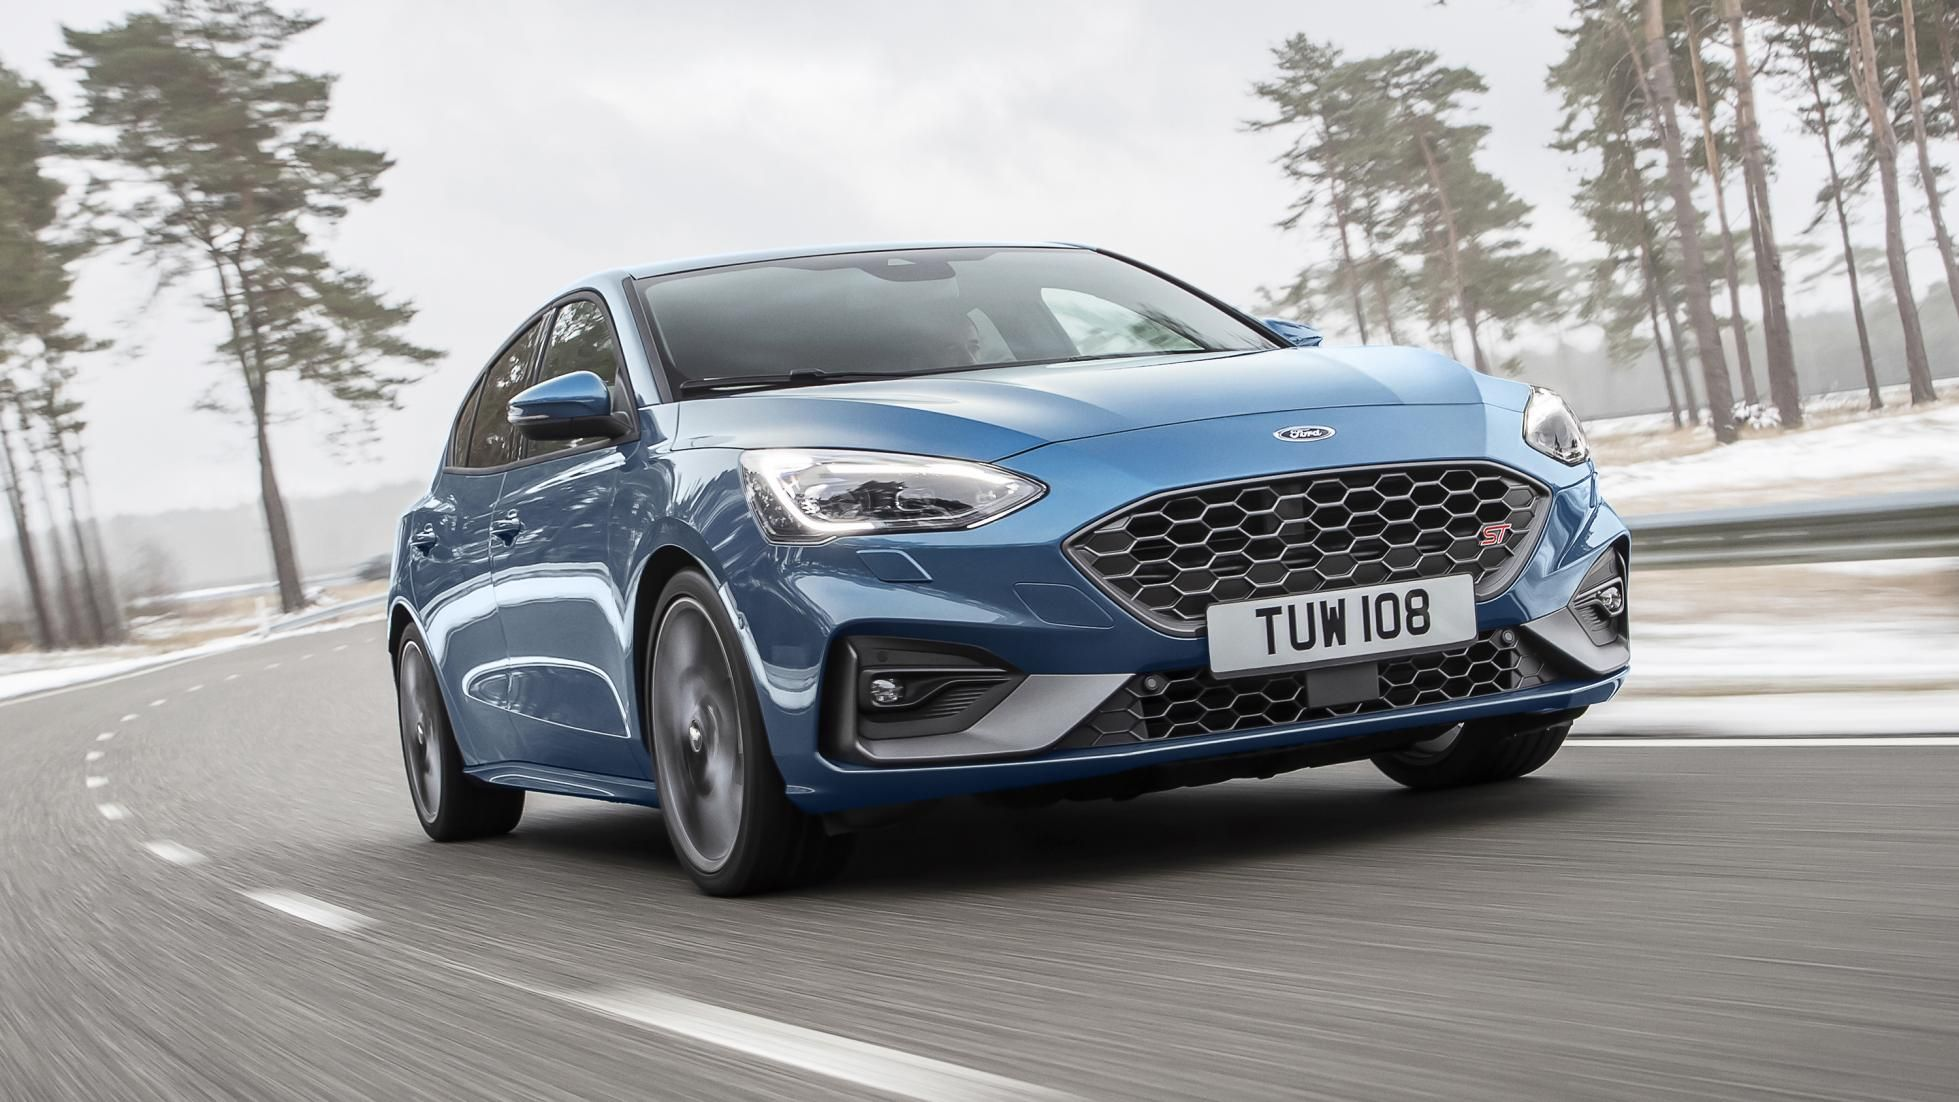 The New Ford Focus St Has More Torque Than A Type R Ford Focus New Ford Focus Ford